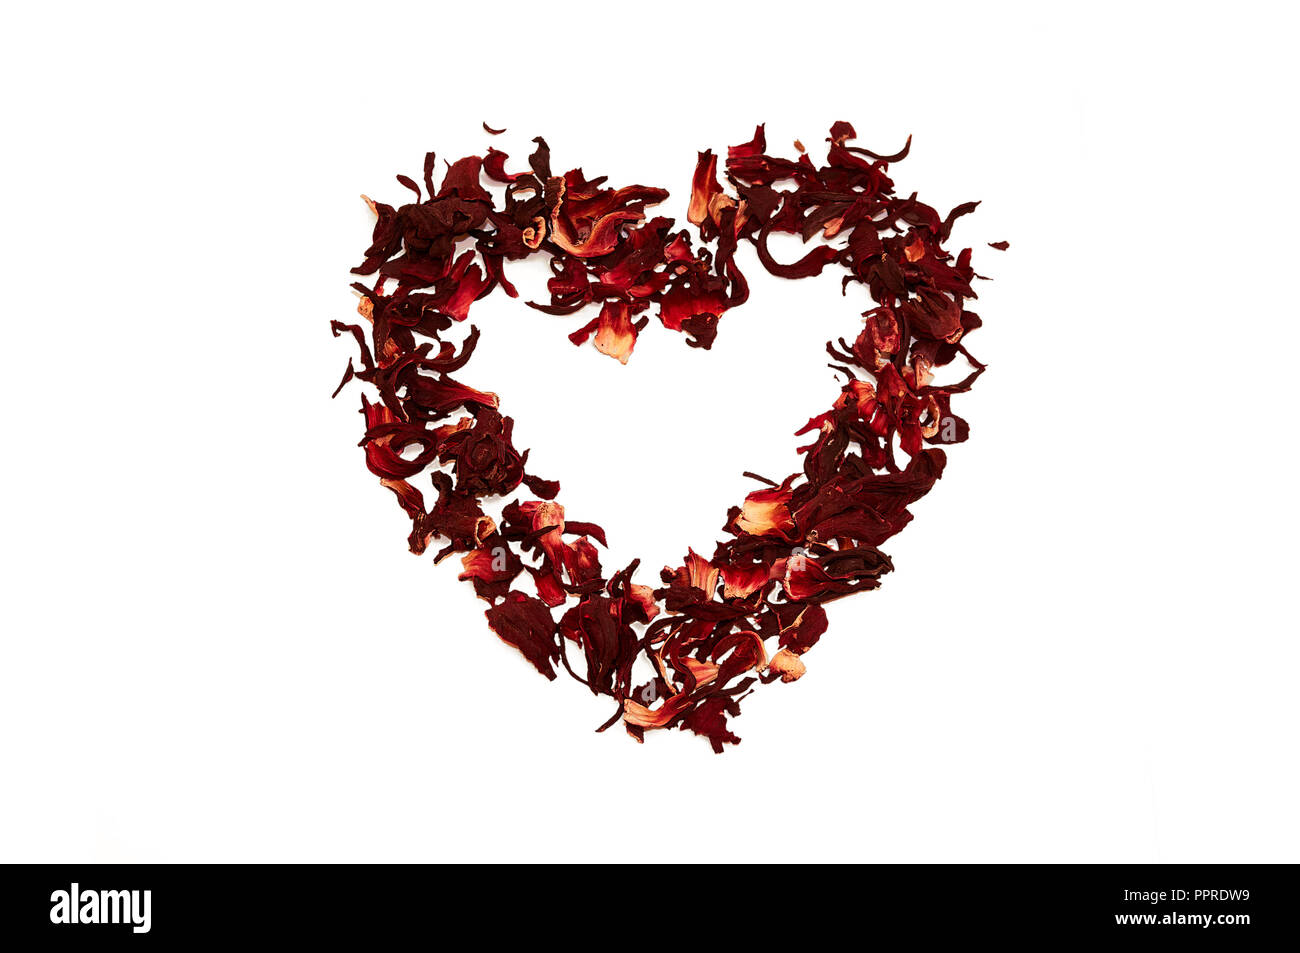 White hibiscus flower red heart cut out stock images pictures alamy hibiscus tea in the shape of heart on a white background stock image izmirmasajfo